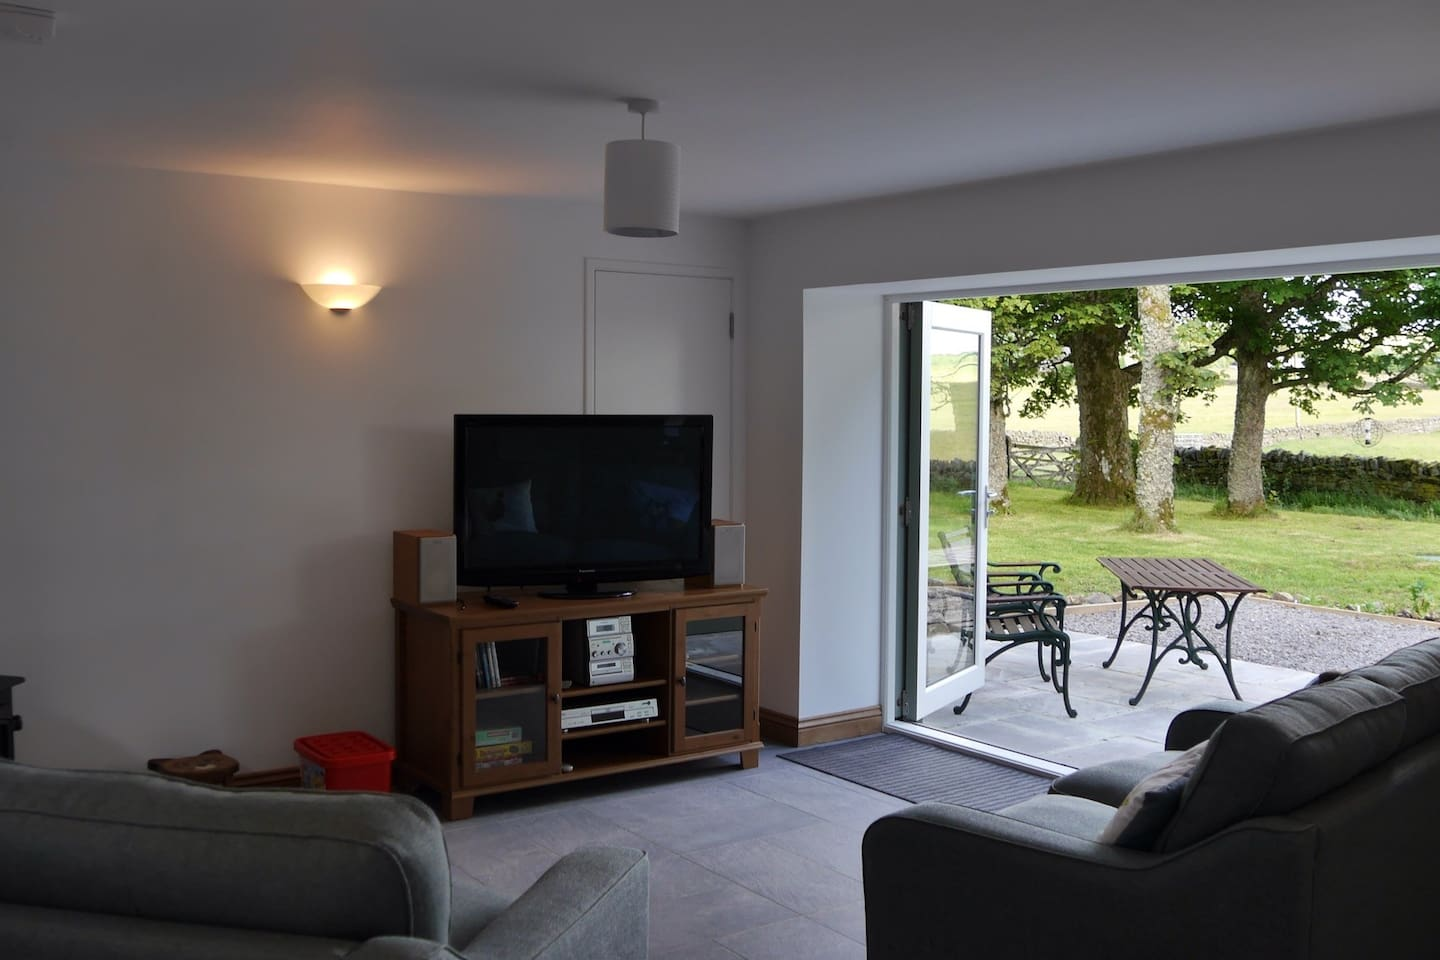 Living room with direct access to the patio and views over adjoining fields